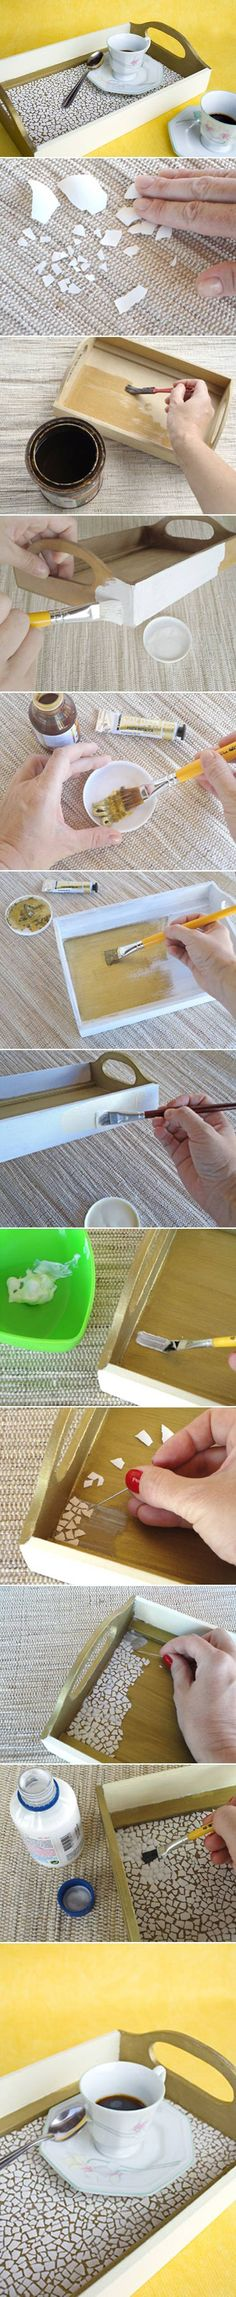 DIY Eggshell Mosaic Tray. A nice, detailed, craft idea for all you tweekers out there! Should take you all of about 10 minutes.